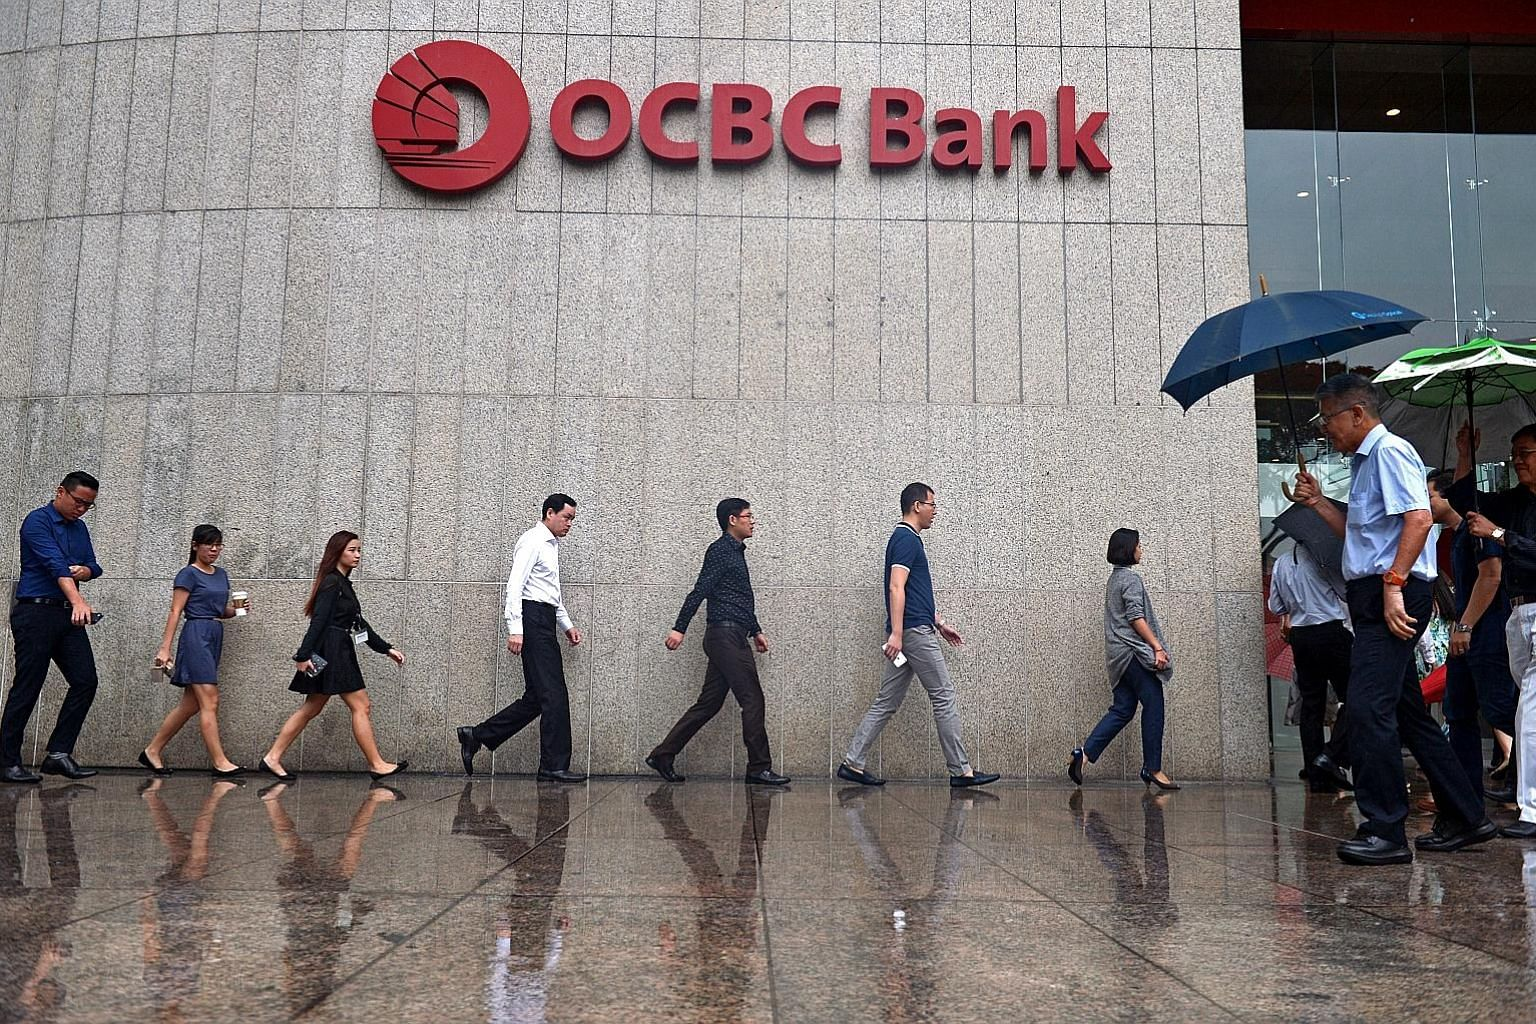 OCBC Bank's latest package promises rates comparable to those offered by DBS Bank and United Overseas Bank a week ago. But while these offers are enticing, home buyers still need to consider the fine print, such as lock-in periods and rate variabilit